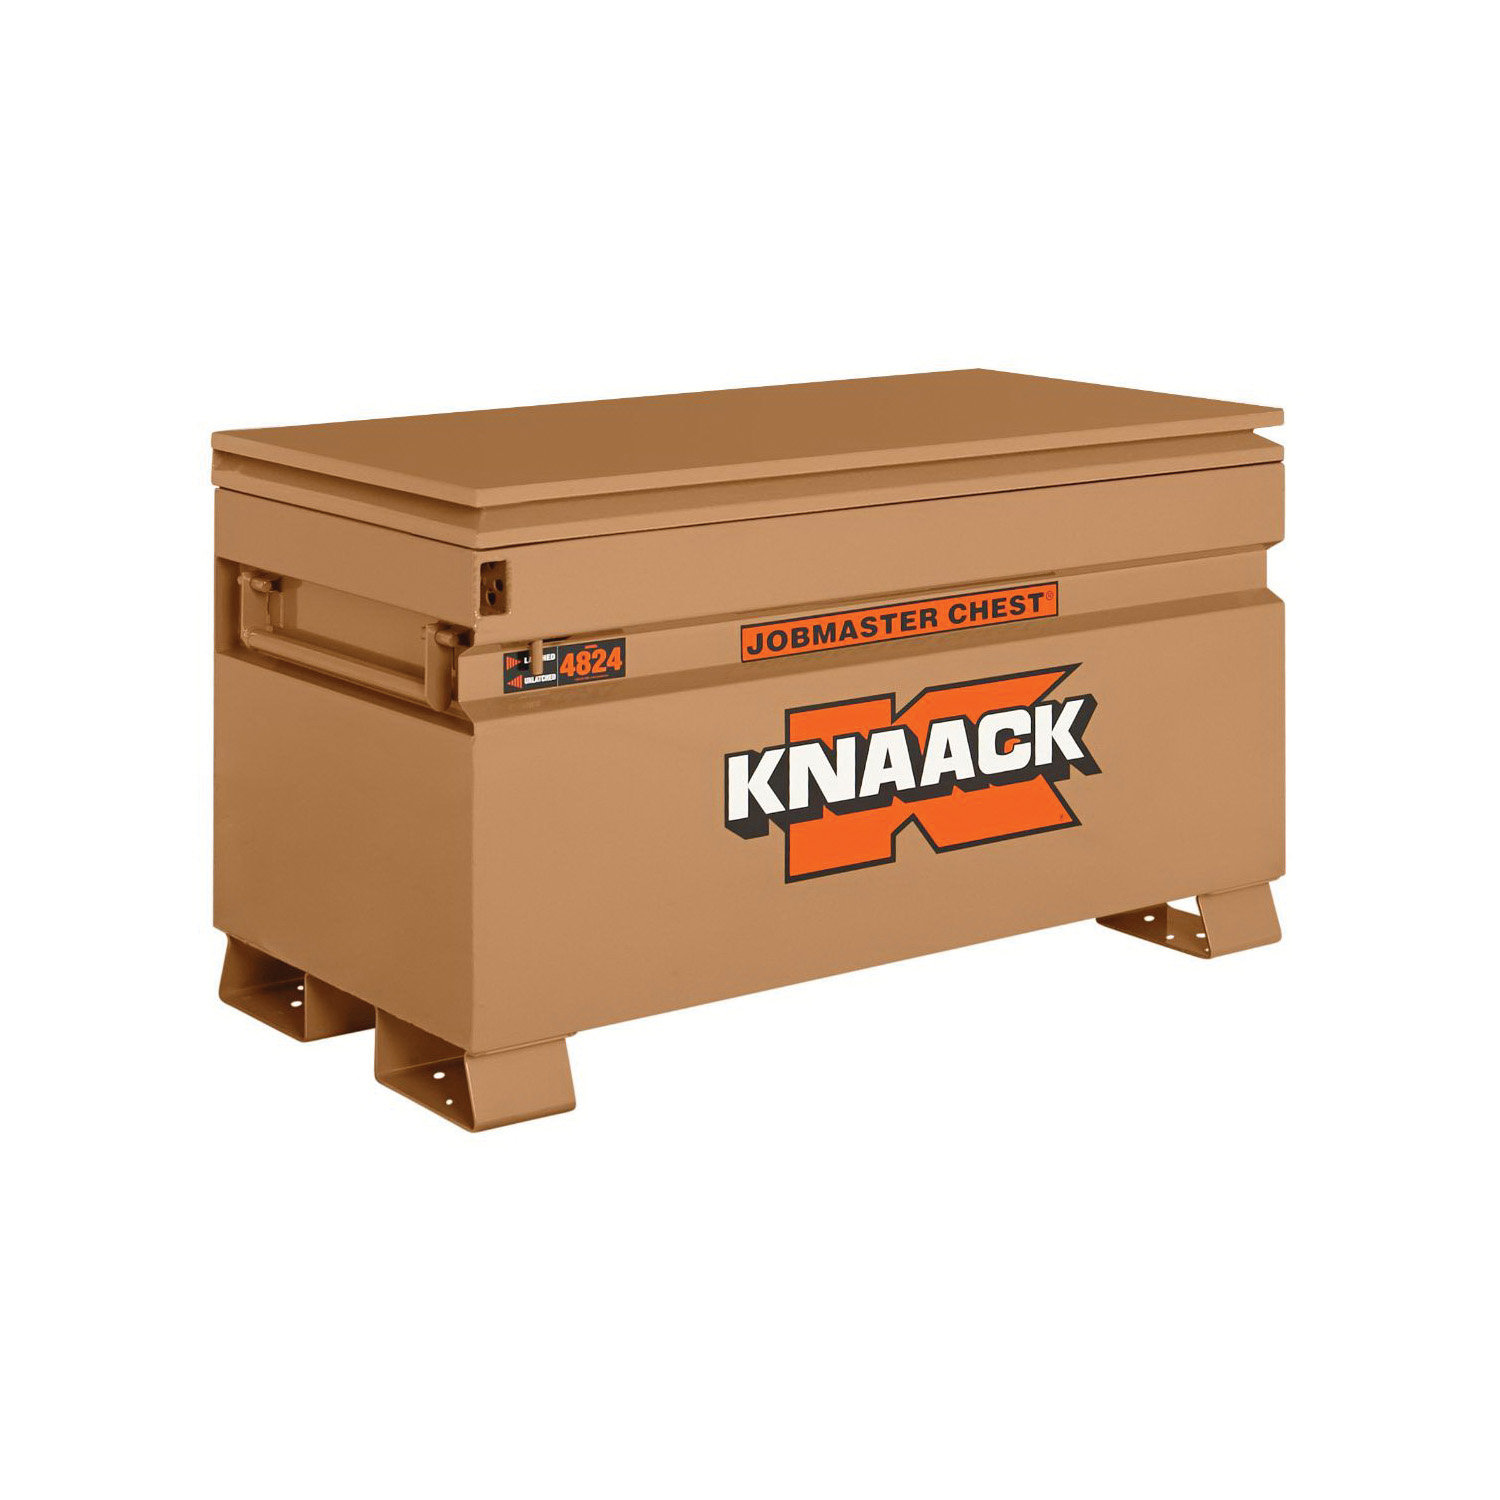 KNAACK® JOBMASTER® 4824 Chest Box, 28-1/4 in x 24 in W x 48 in D, 16 cu-ft Storage, Steel